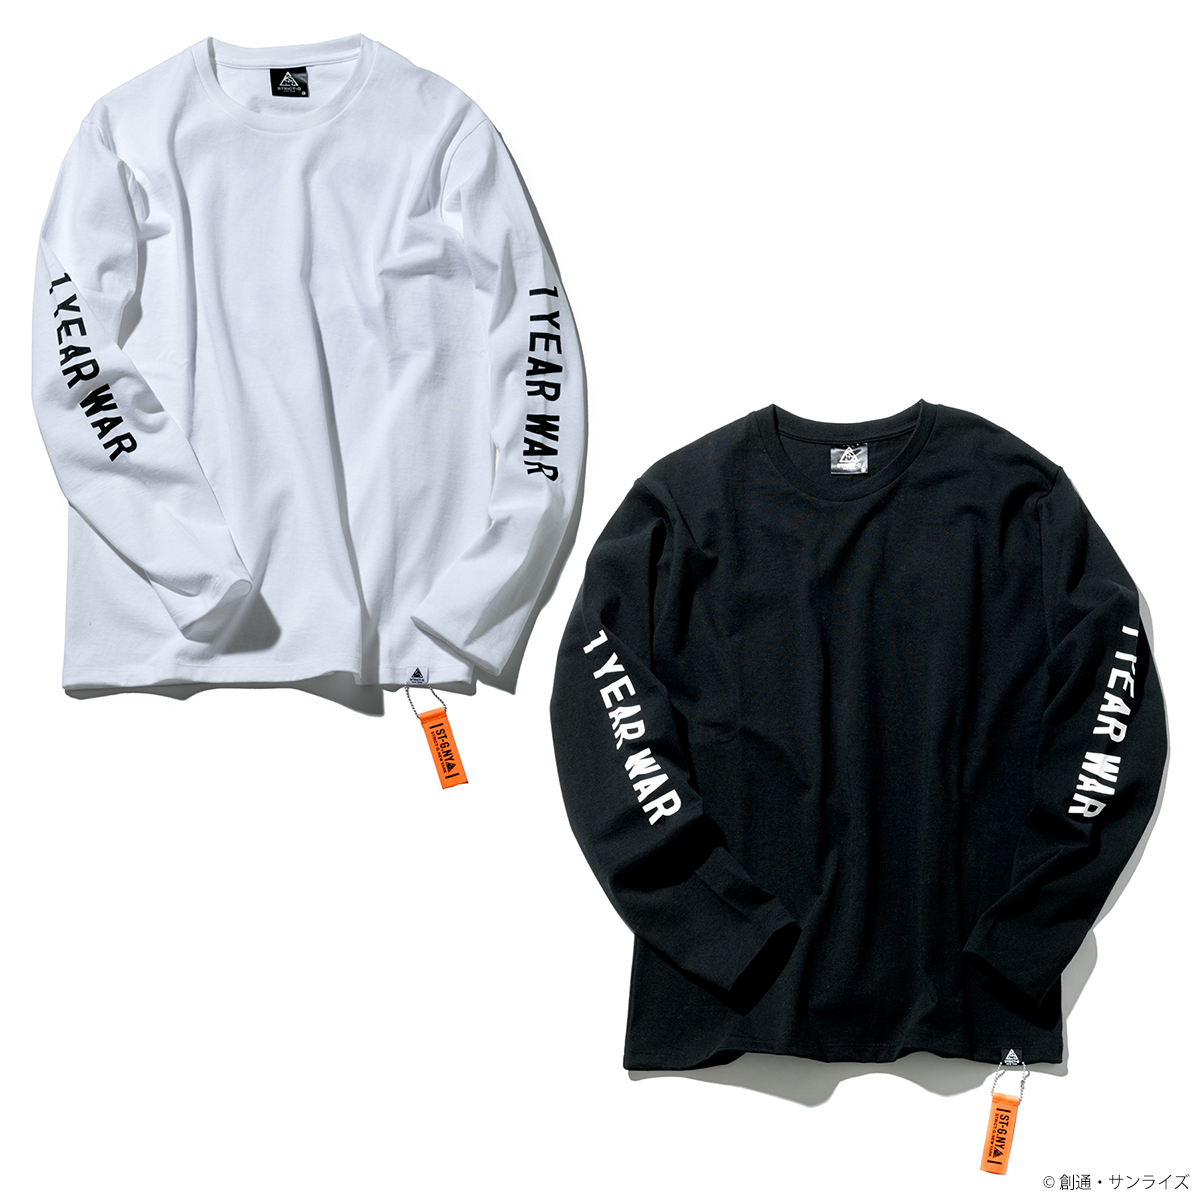 "STRICT-G NEW YARK 2020 S/S ""1 YEAR WAR"" 第一弾発売!"